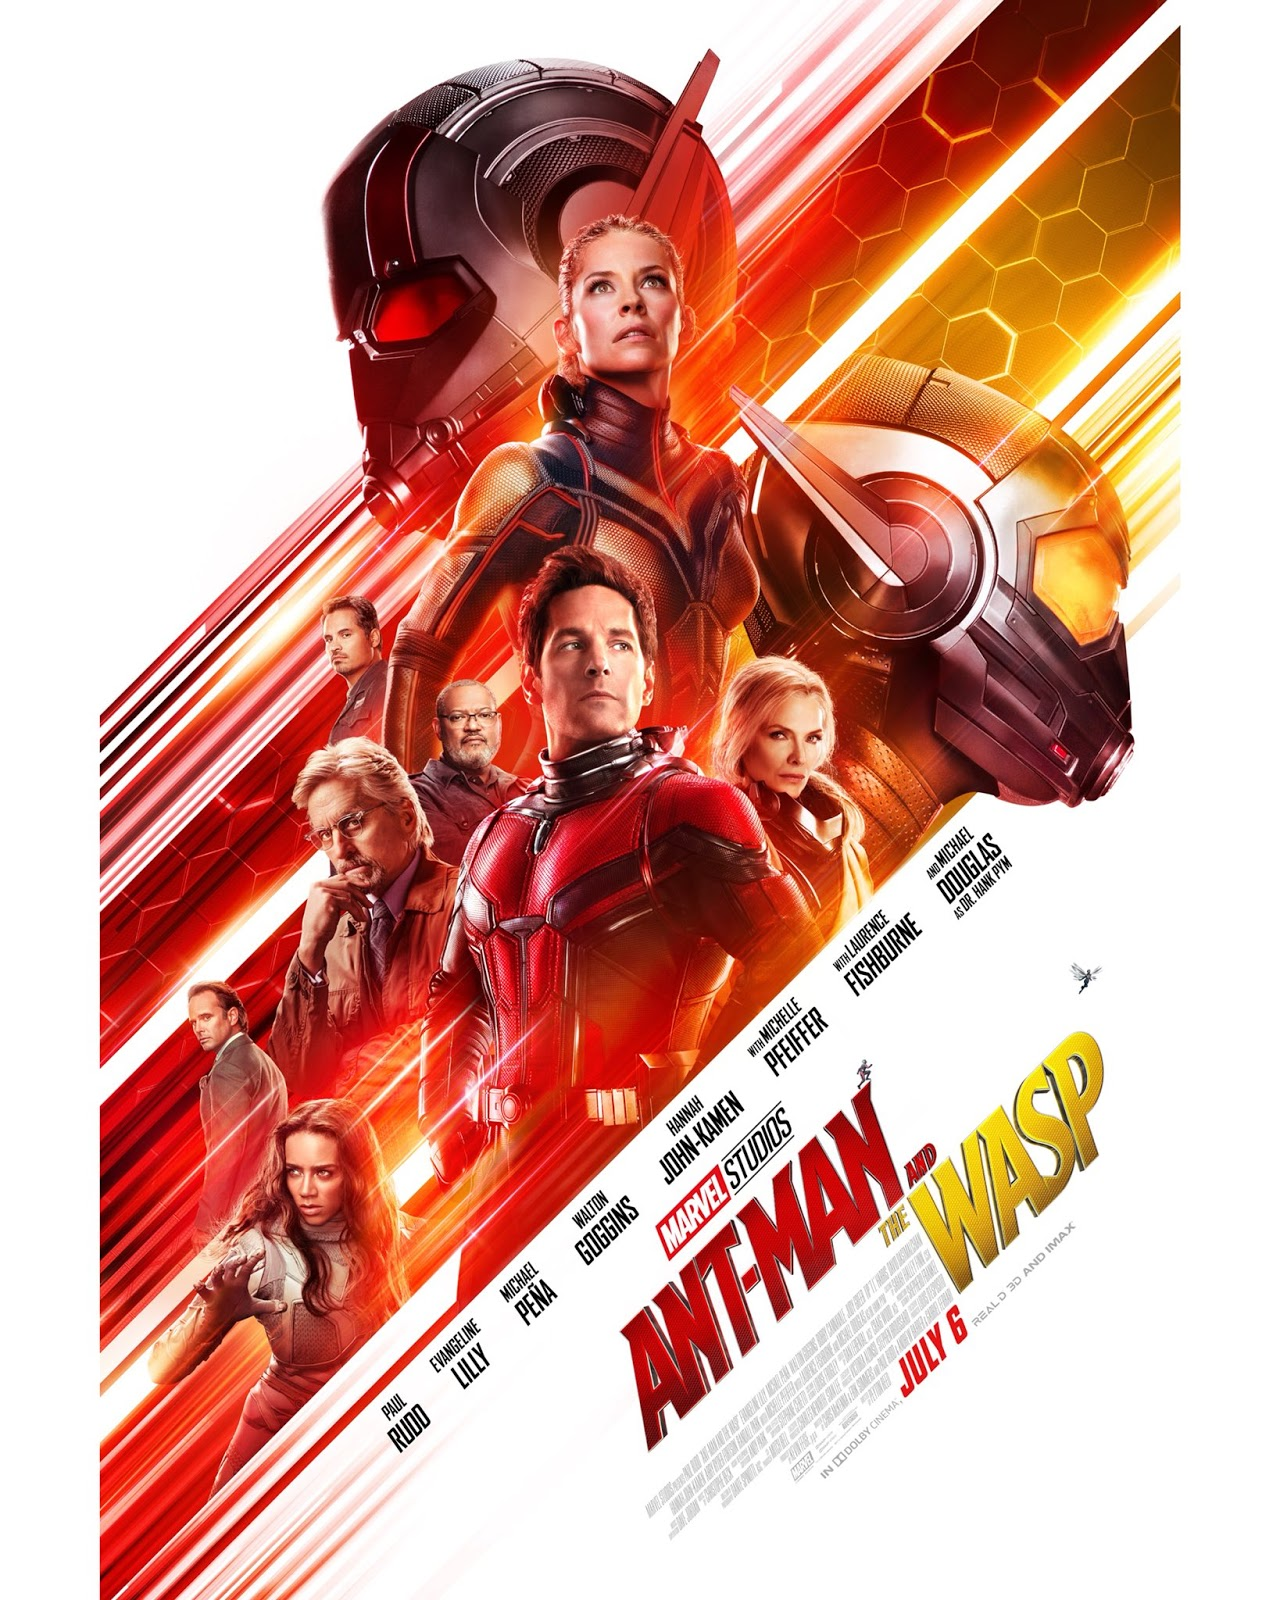 Marvel Ant-Man and the Wasp poster